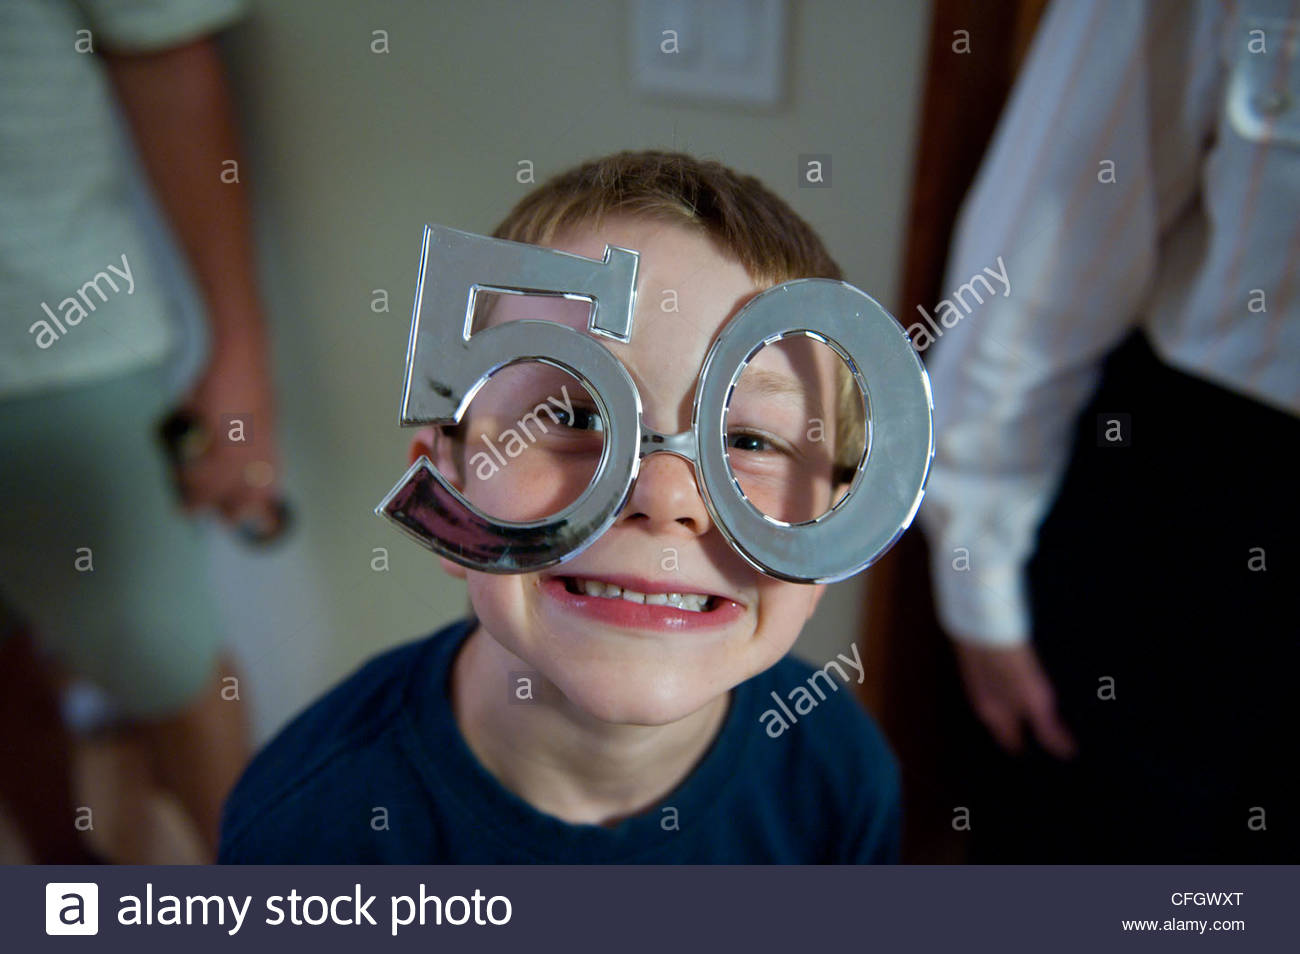 A young boy wears goofy glasses at a 50th birthday party celebration. - Stock Image